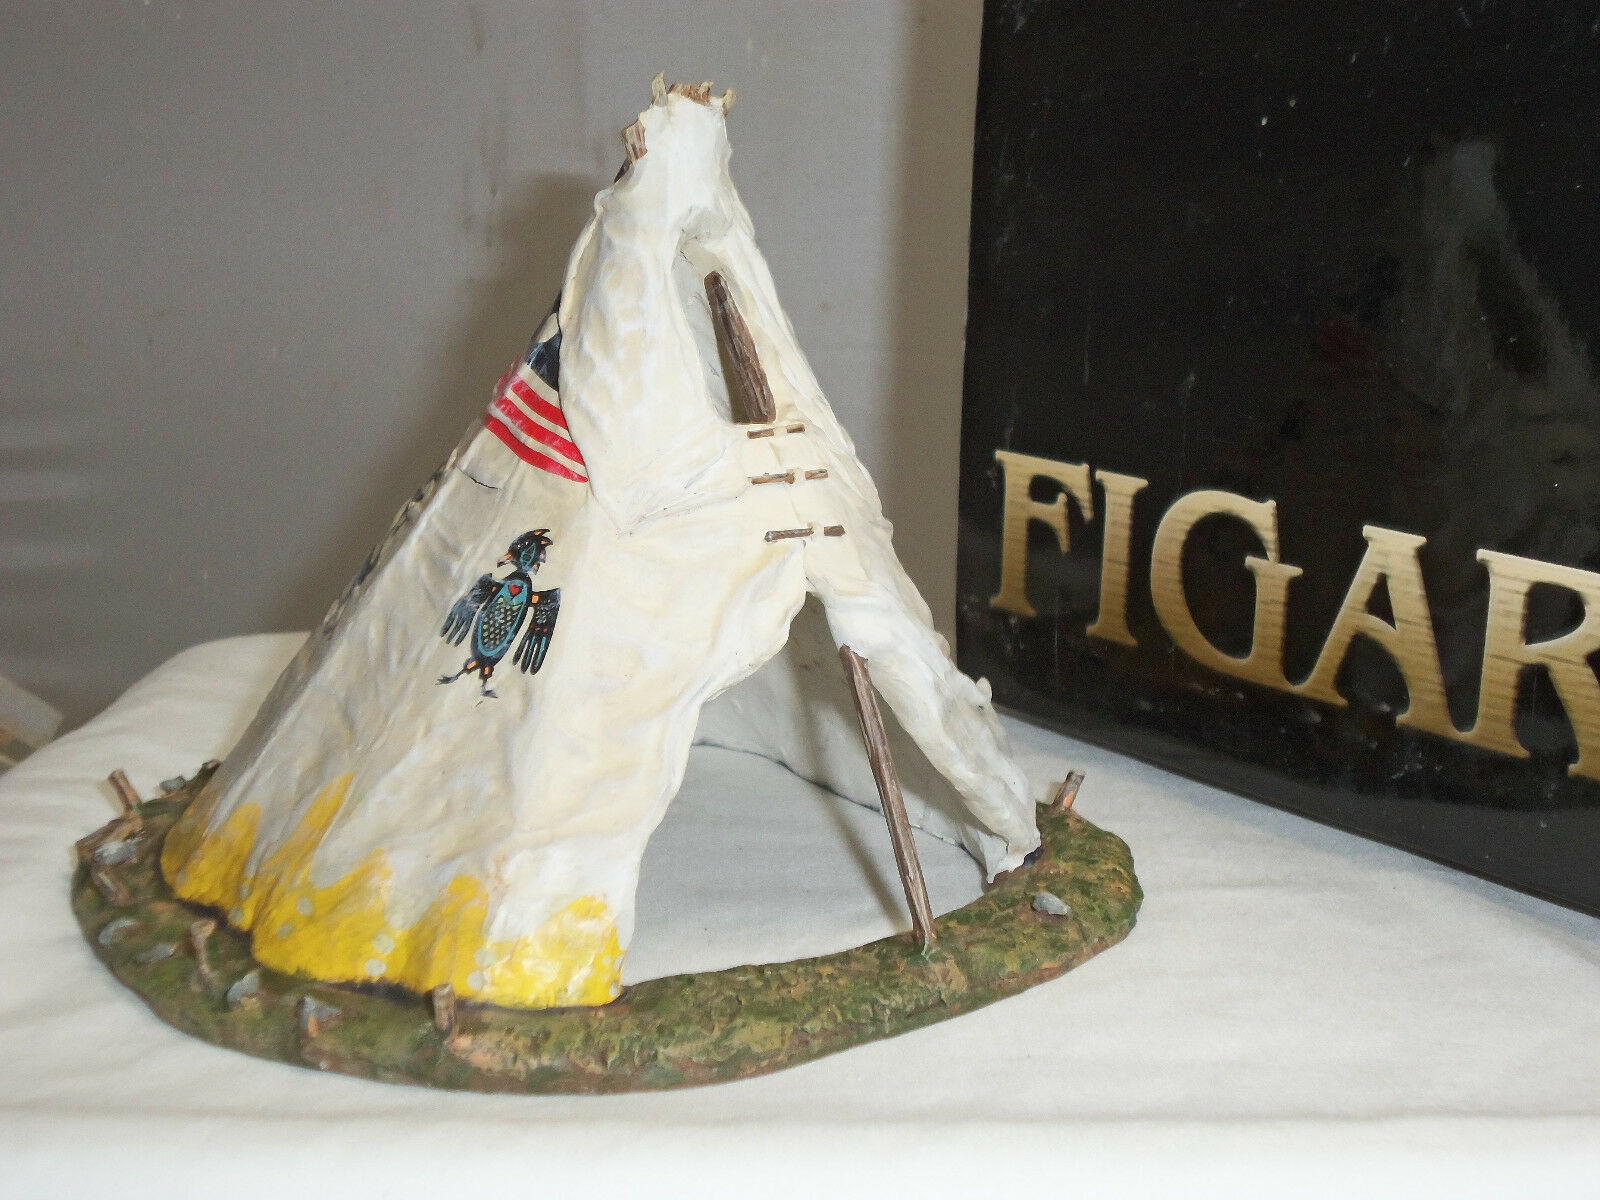 FIGARTI LC1009 US WILD WEST AMERICAN INDIAN WIGWAM METAL TOY SOLDIER TIPI TENT